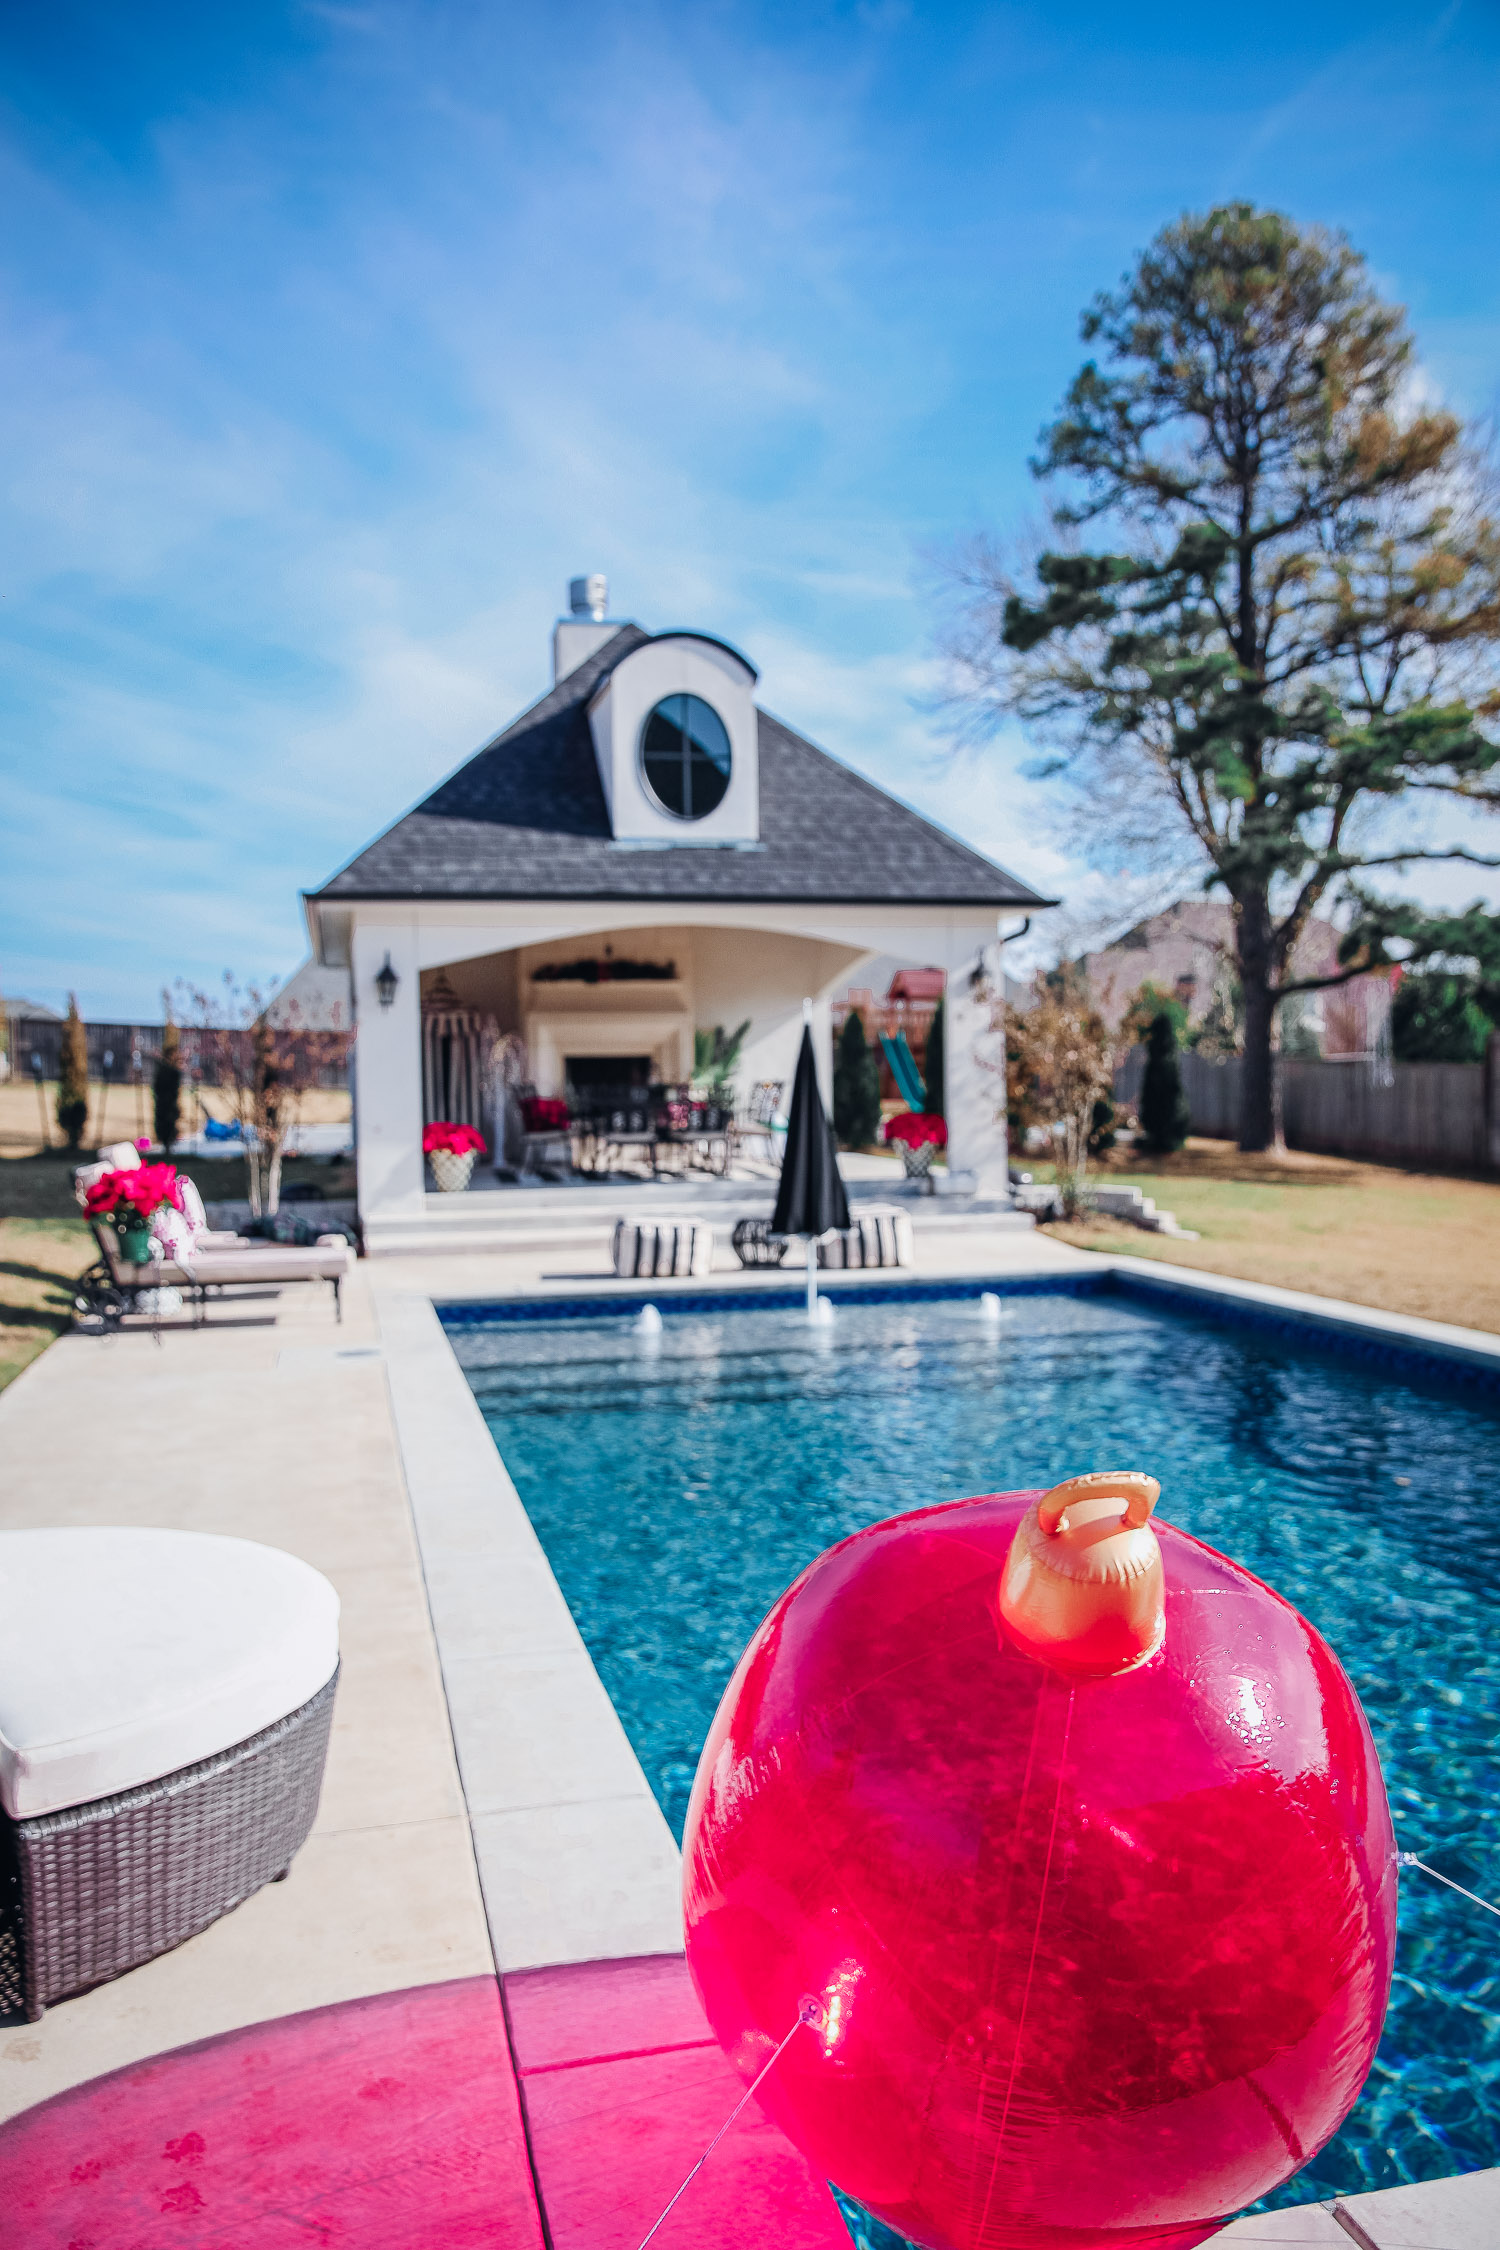 backyard decor christmas, outdoor pool christmas decor, walmart pool ornament, emily gemma backyard |Christmas Pool Decorations by popular US life and style blog, The Sweetest Thing: image of a pool house and pool decorated with Christmas garland, black and red buffalo check throw pillows, Christmas tree decor, poinsettia plants, inflatable christmas ornaments, and candles.